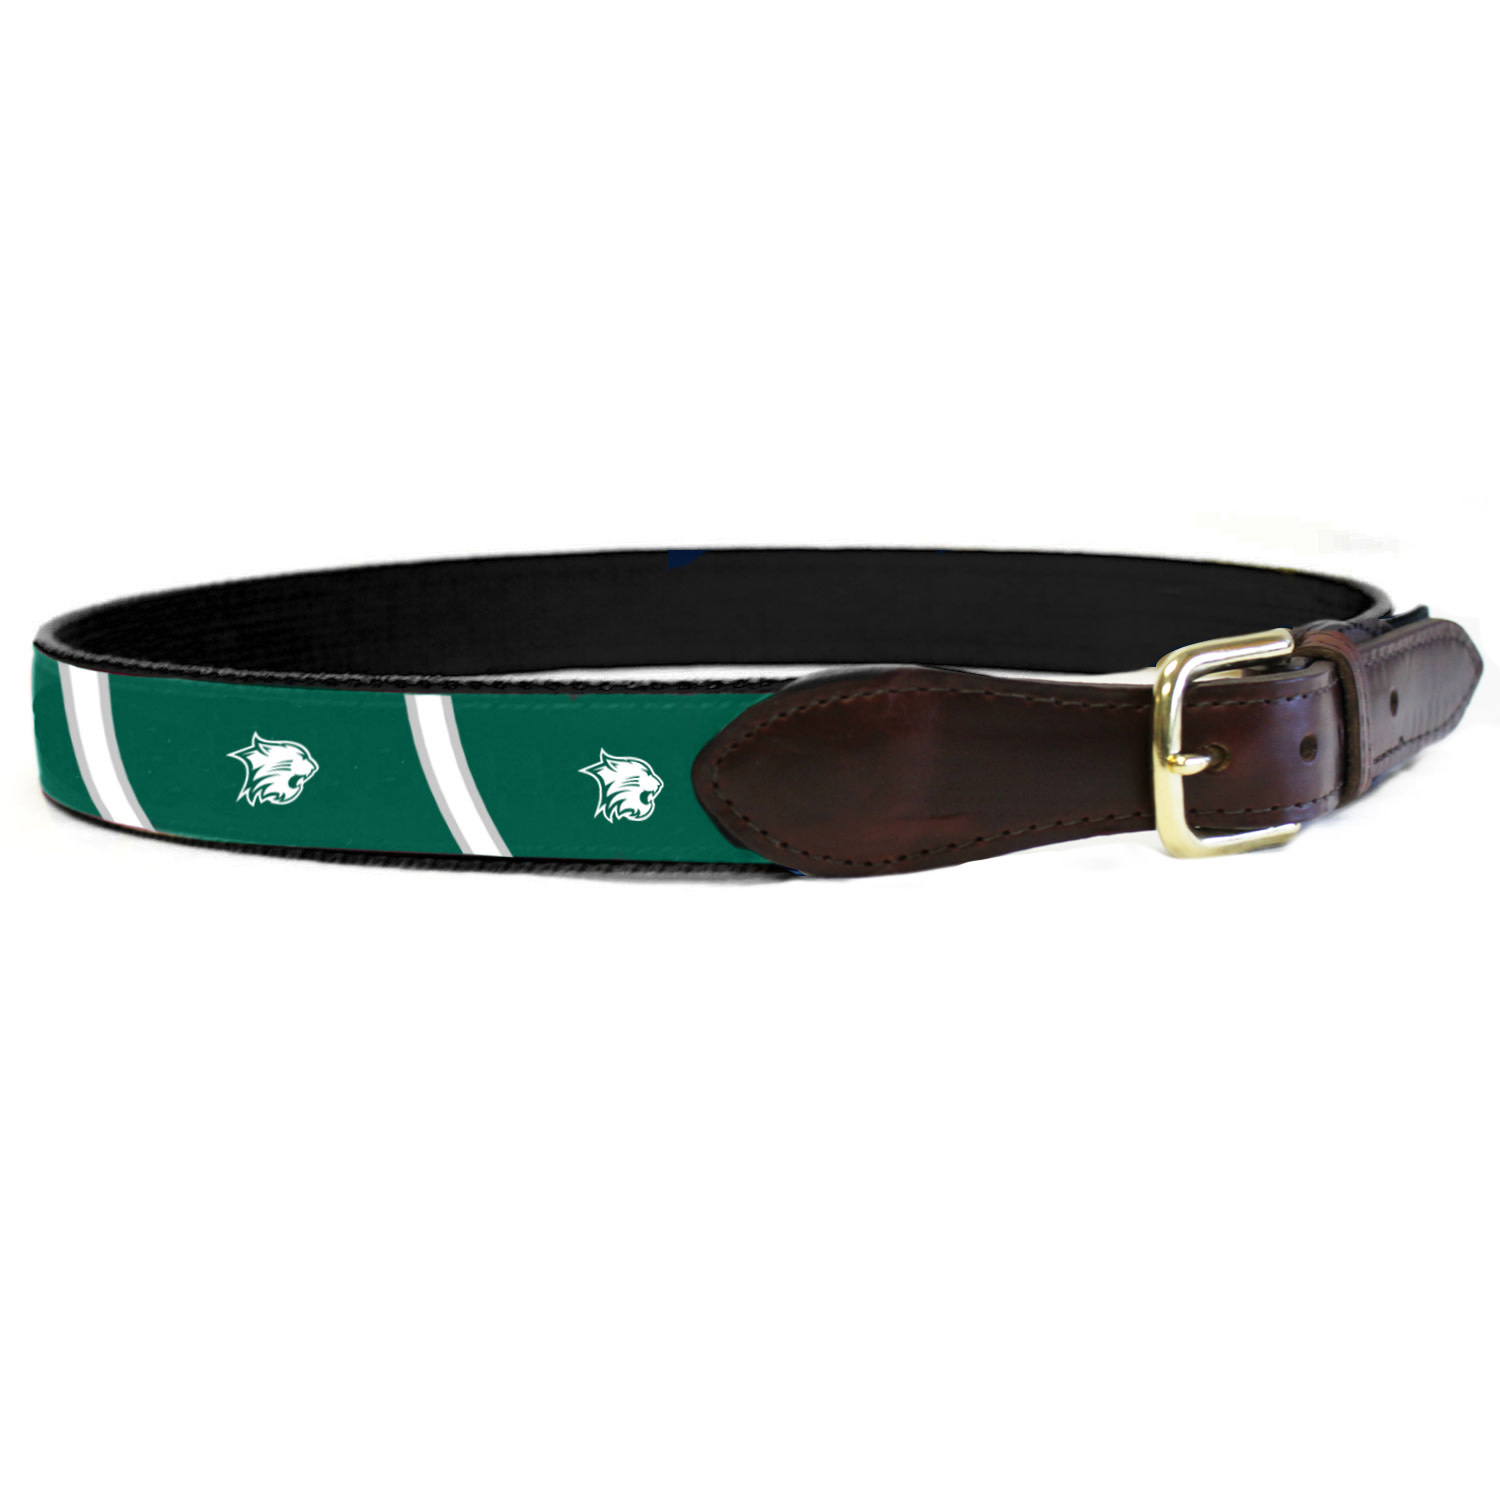 Belt: Leather/Canvas